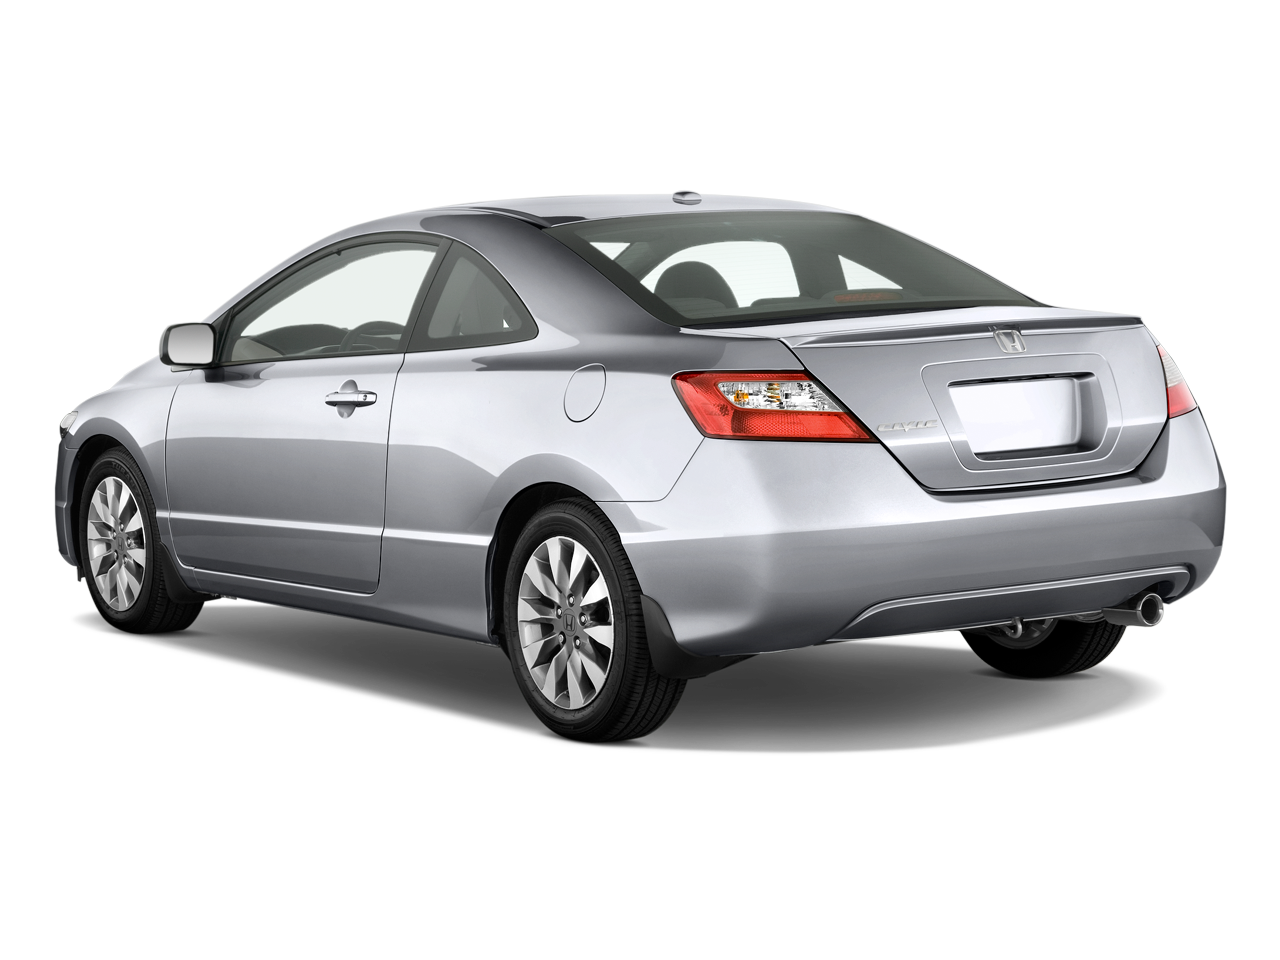 2009 honda civic si coupe honda sport coupe review for Honda civic com